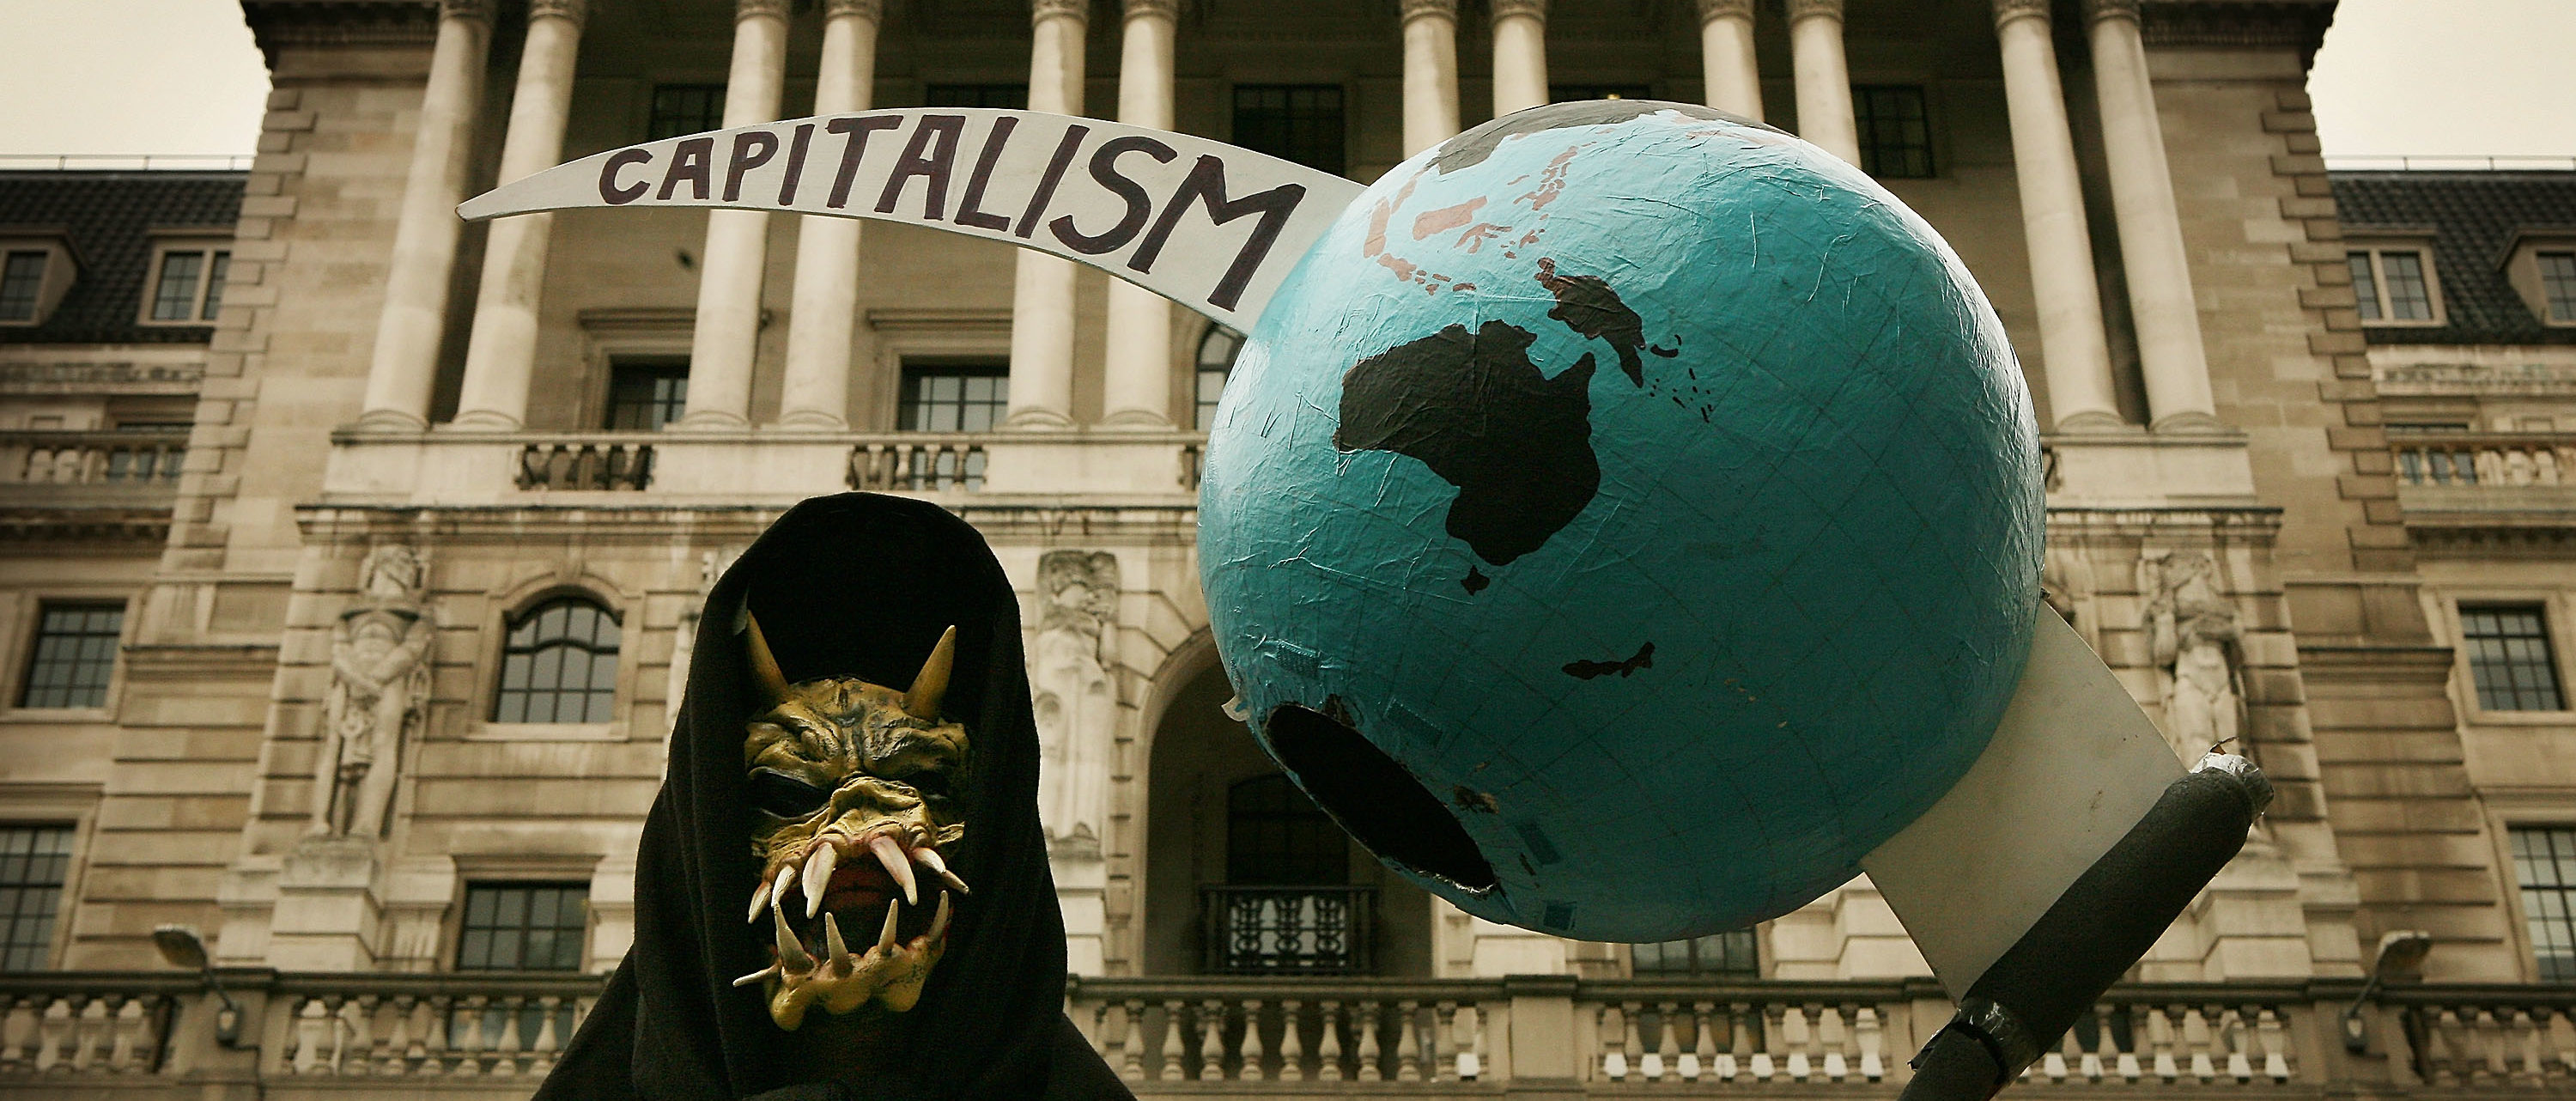 LONDON - OCTOBER 13: A grim reaper figure holds a globe pierced by the scythe of capitalism in front of the Bank of England during a protest on October 13, 2008 in London. The UK Government has announced a £37 billion bail out of three retail banks. (Photo by Peter Macdiarmid/Getty Images)